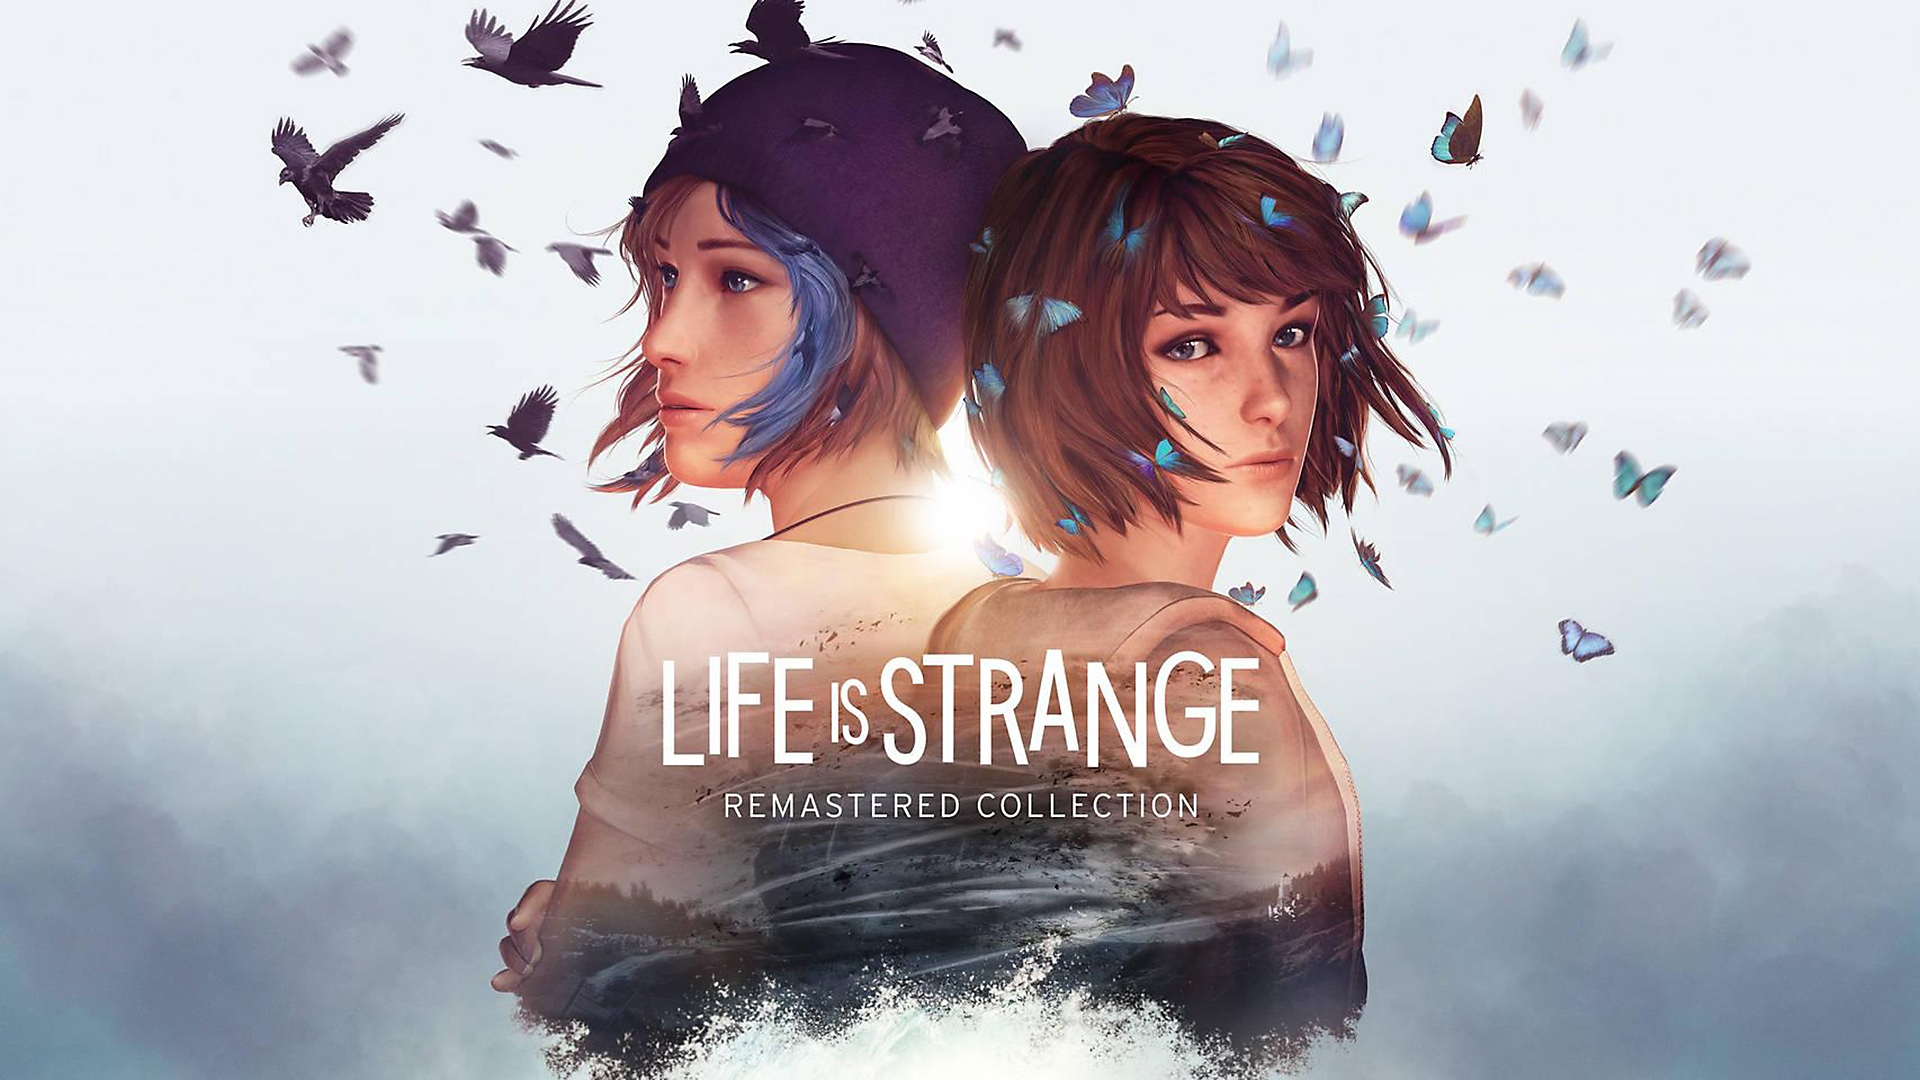 Life is Strange Remastered Collection - Official Trailer | PS4